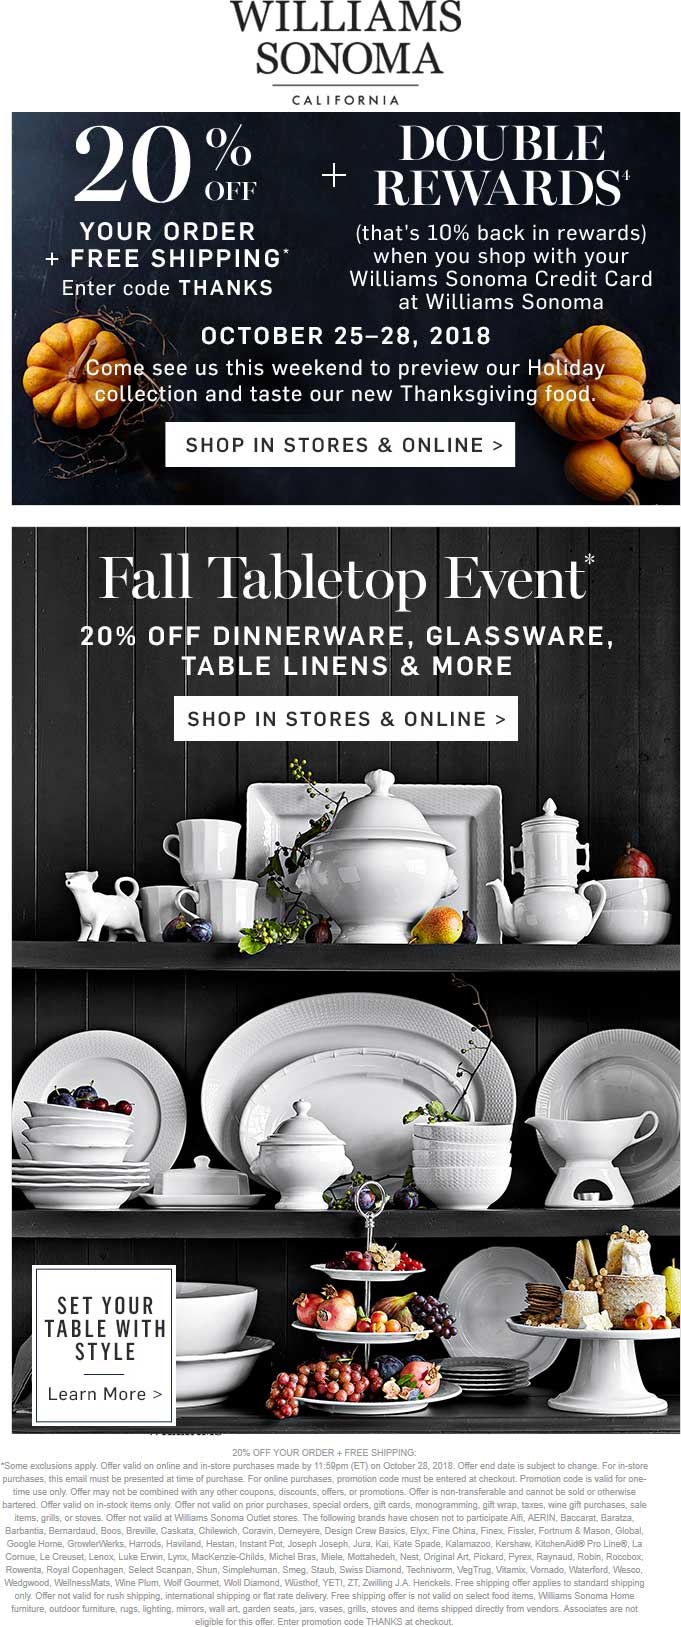 Williams Sonoma Coupon August 2020 20% off at Williams Sonoma, or online via promo code THANKS